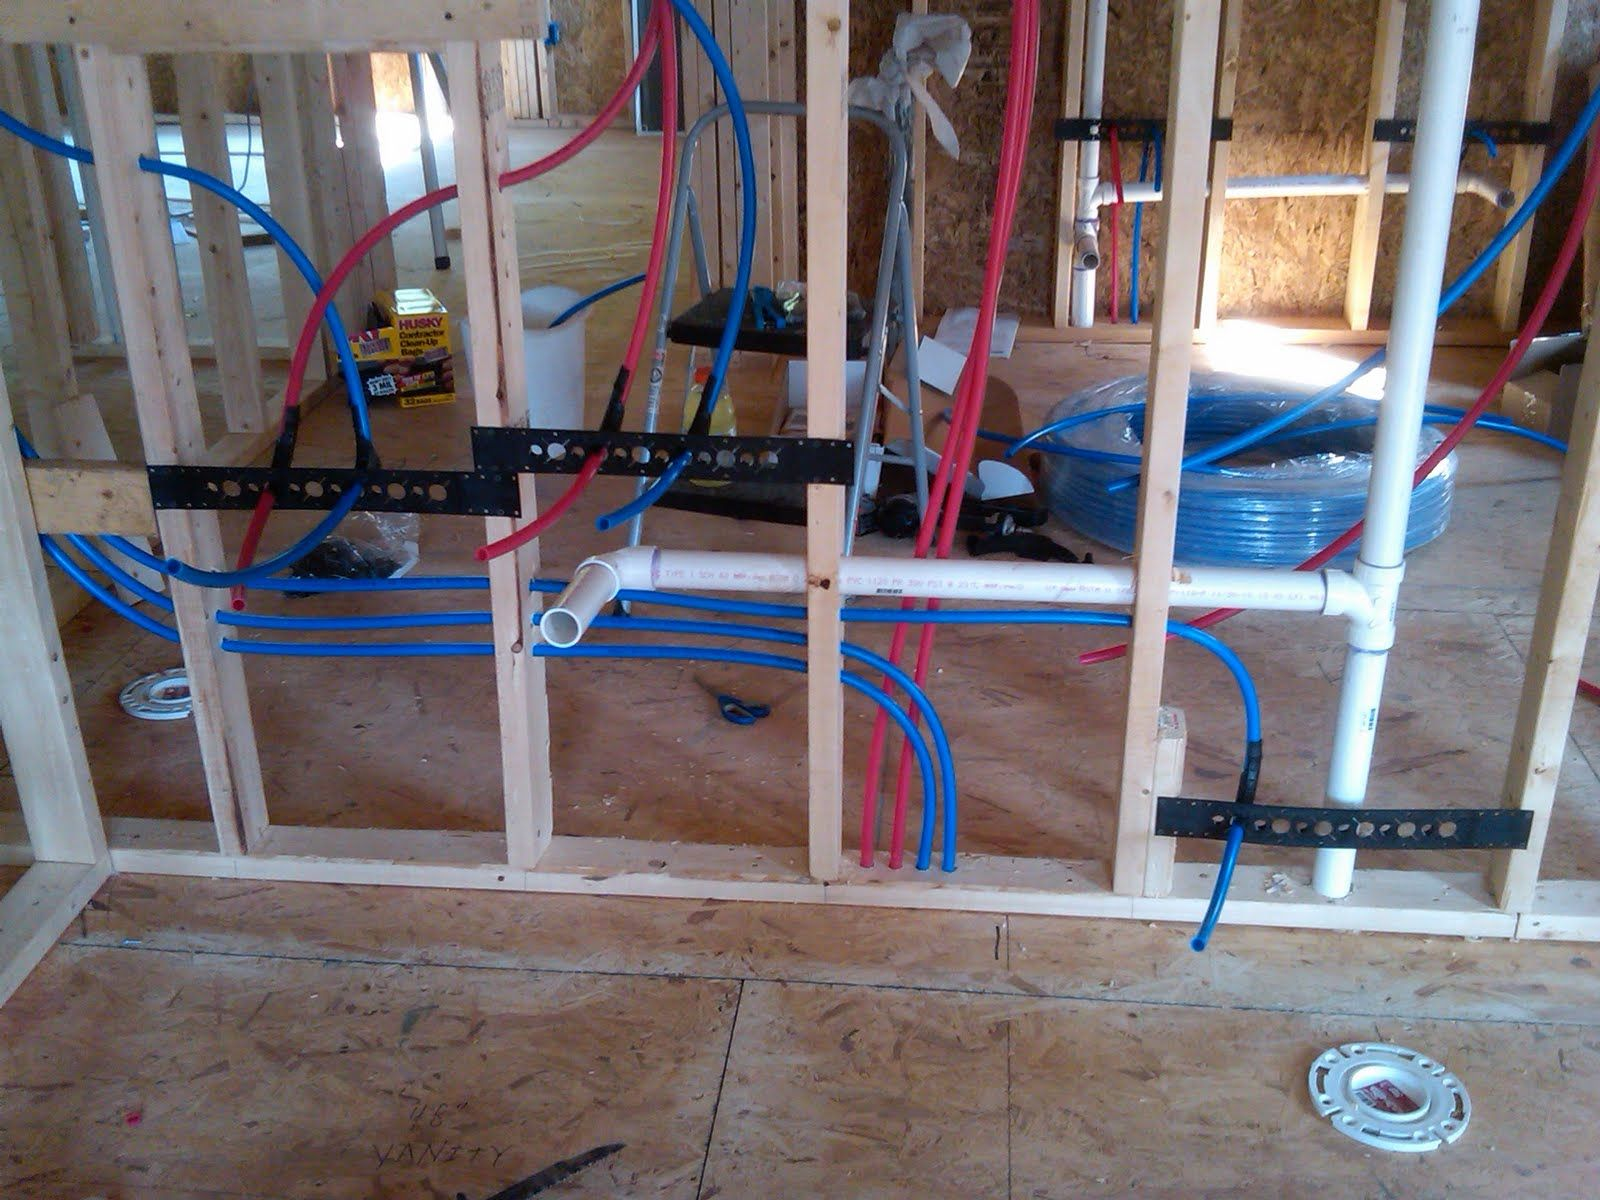 then watch pex plumbing problems done almost